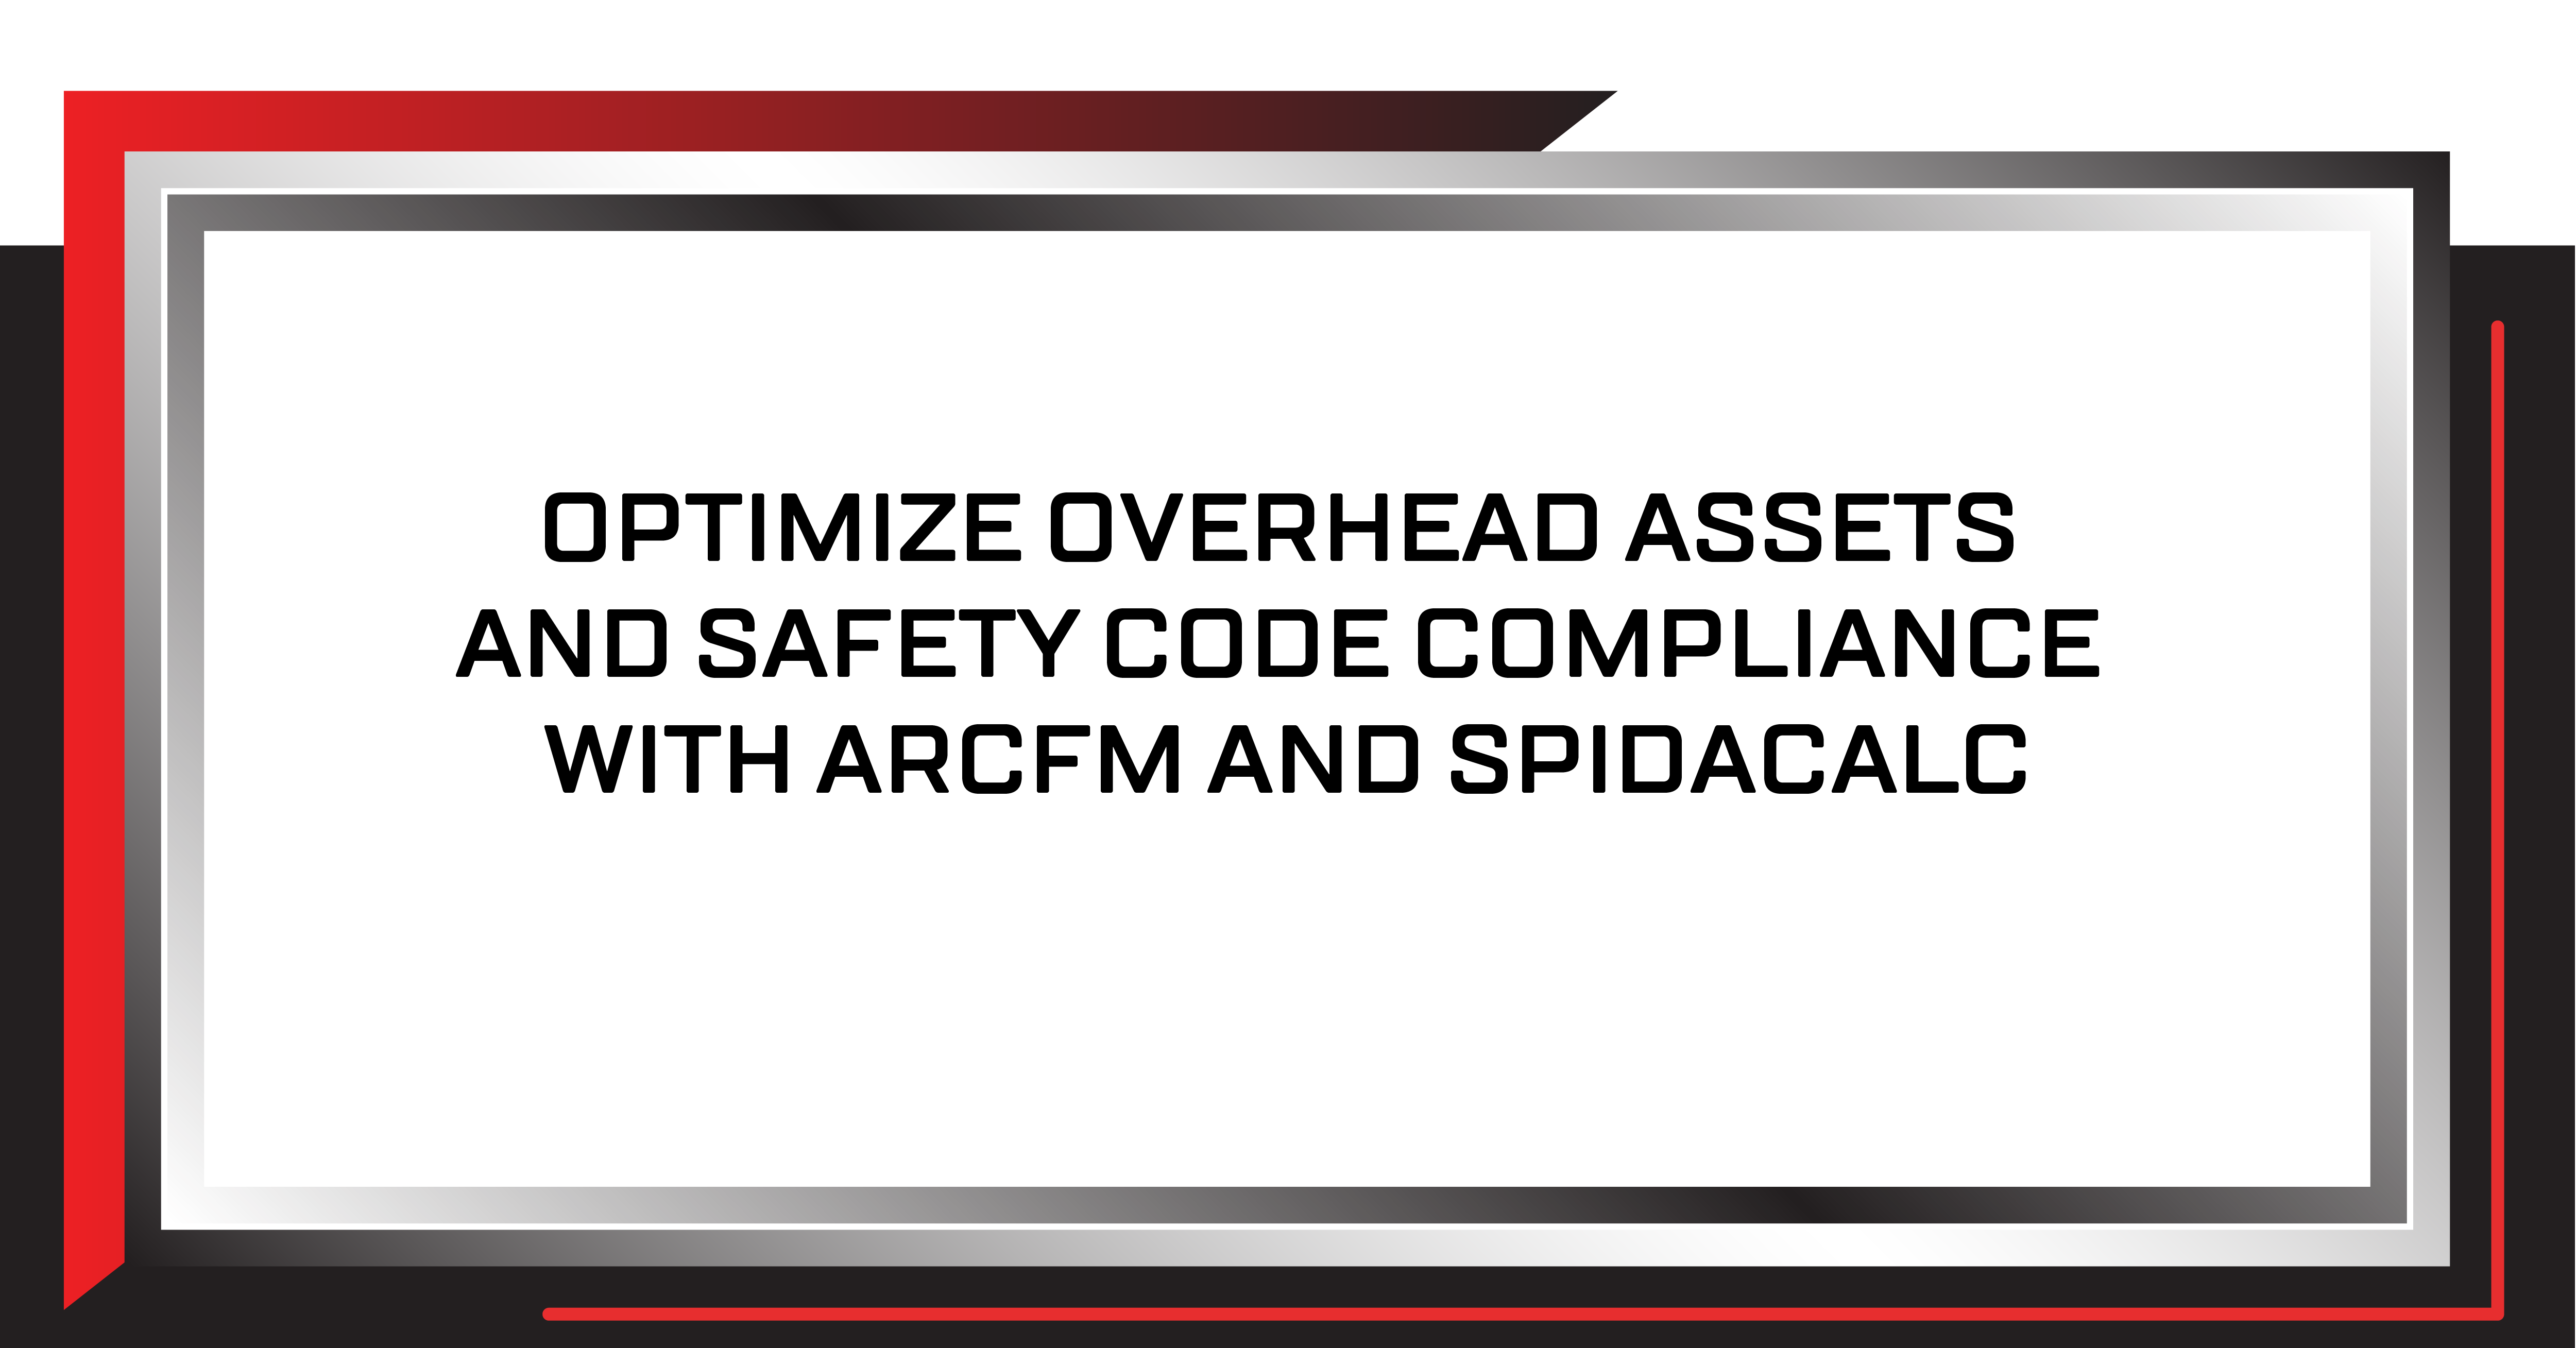 Optimize Overhead Assets & Safety Code Compliance with ArcFM & SPIDA®calc